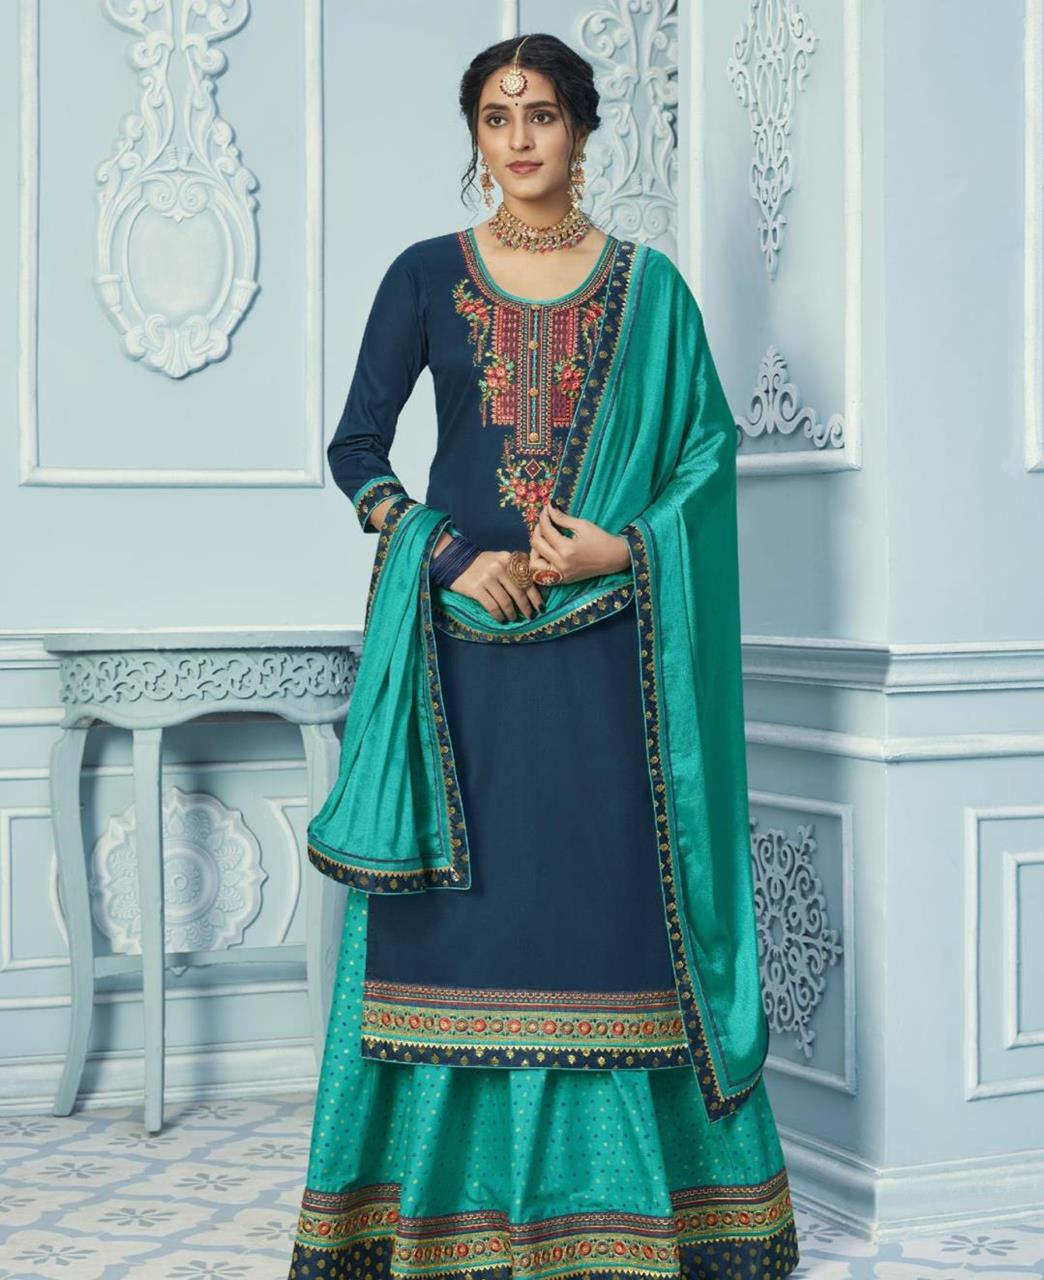 Embroidered Cotton Straight cut Salwar Kameez in Teal Blue